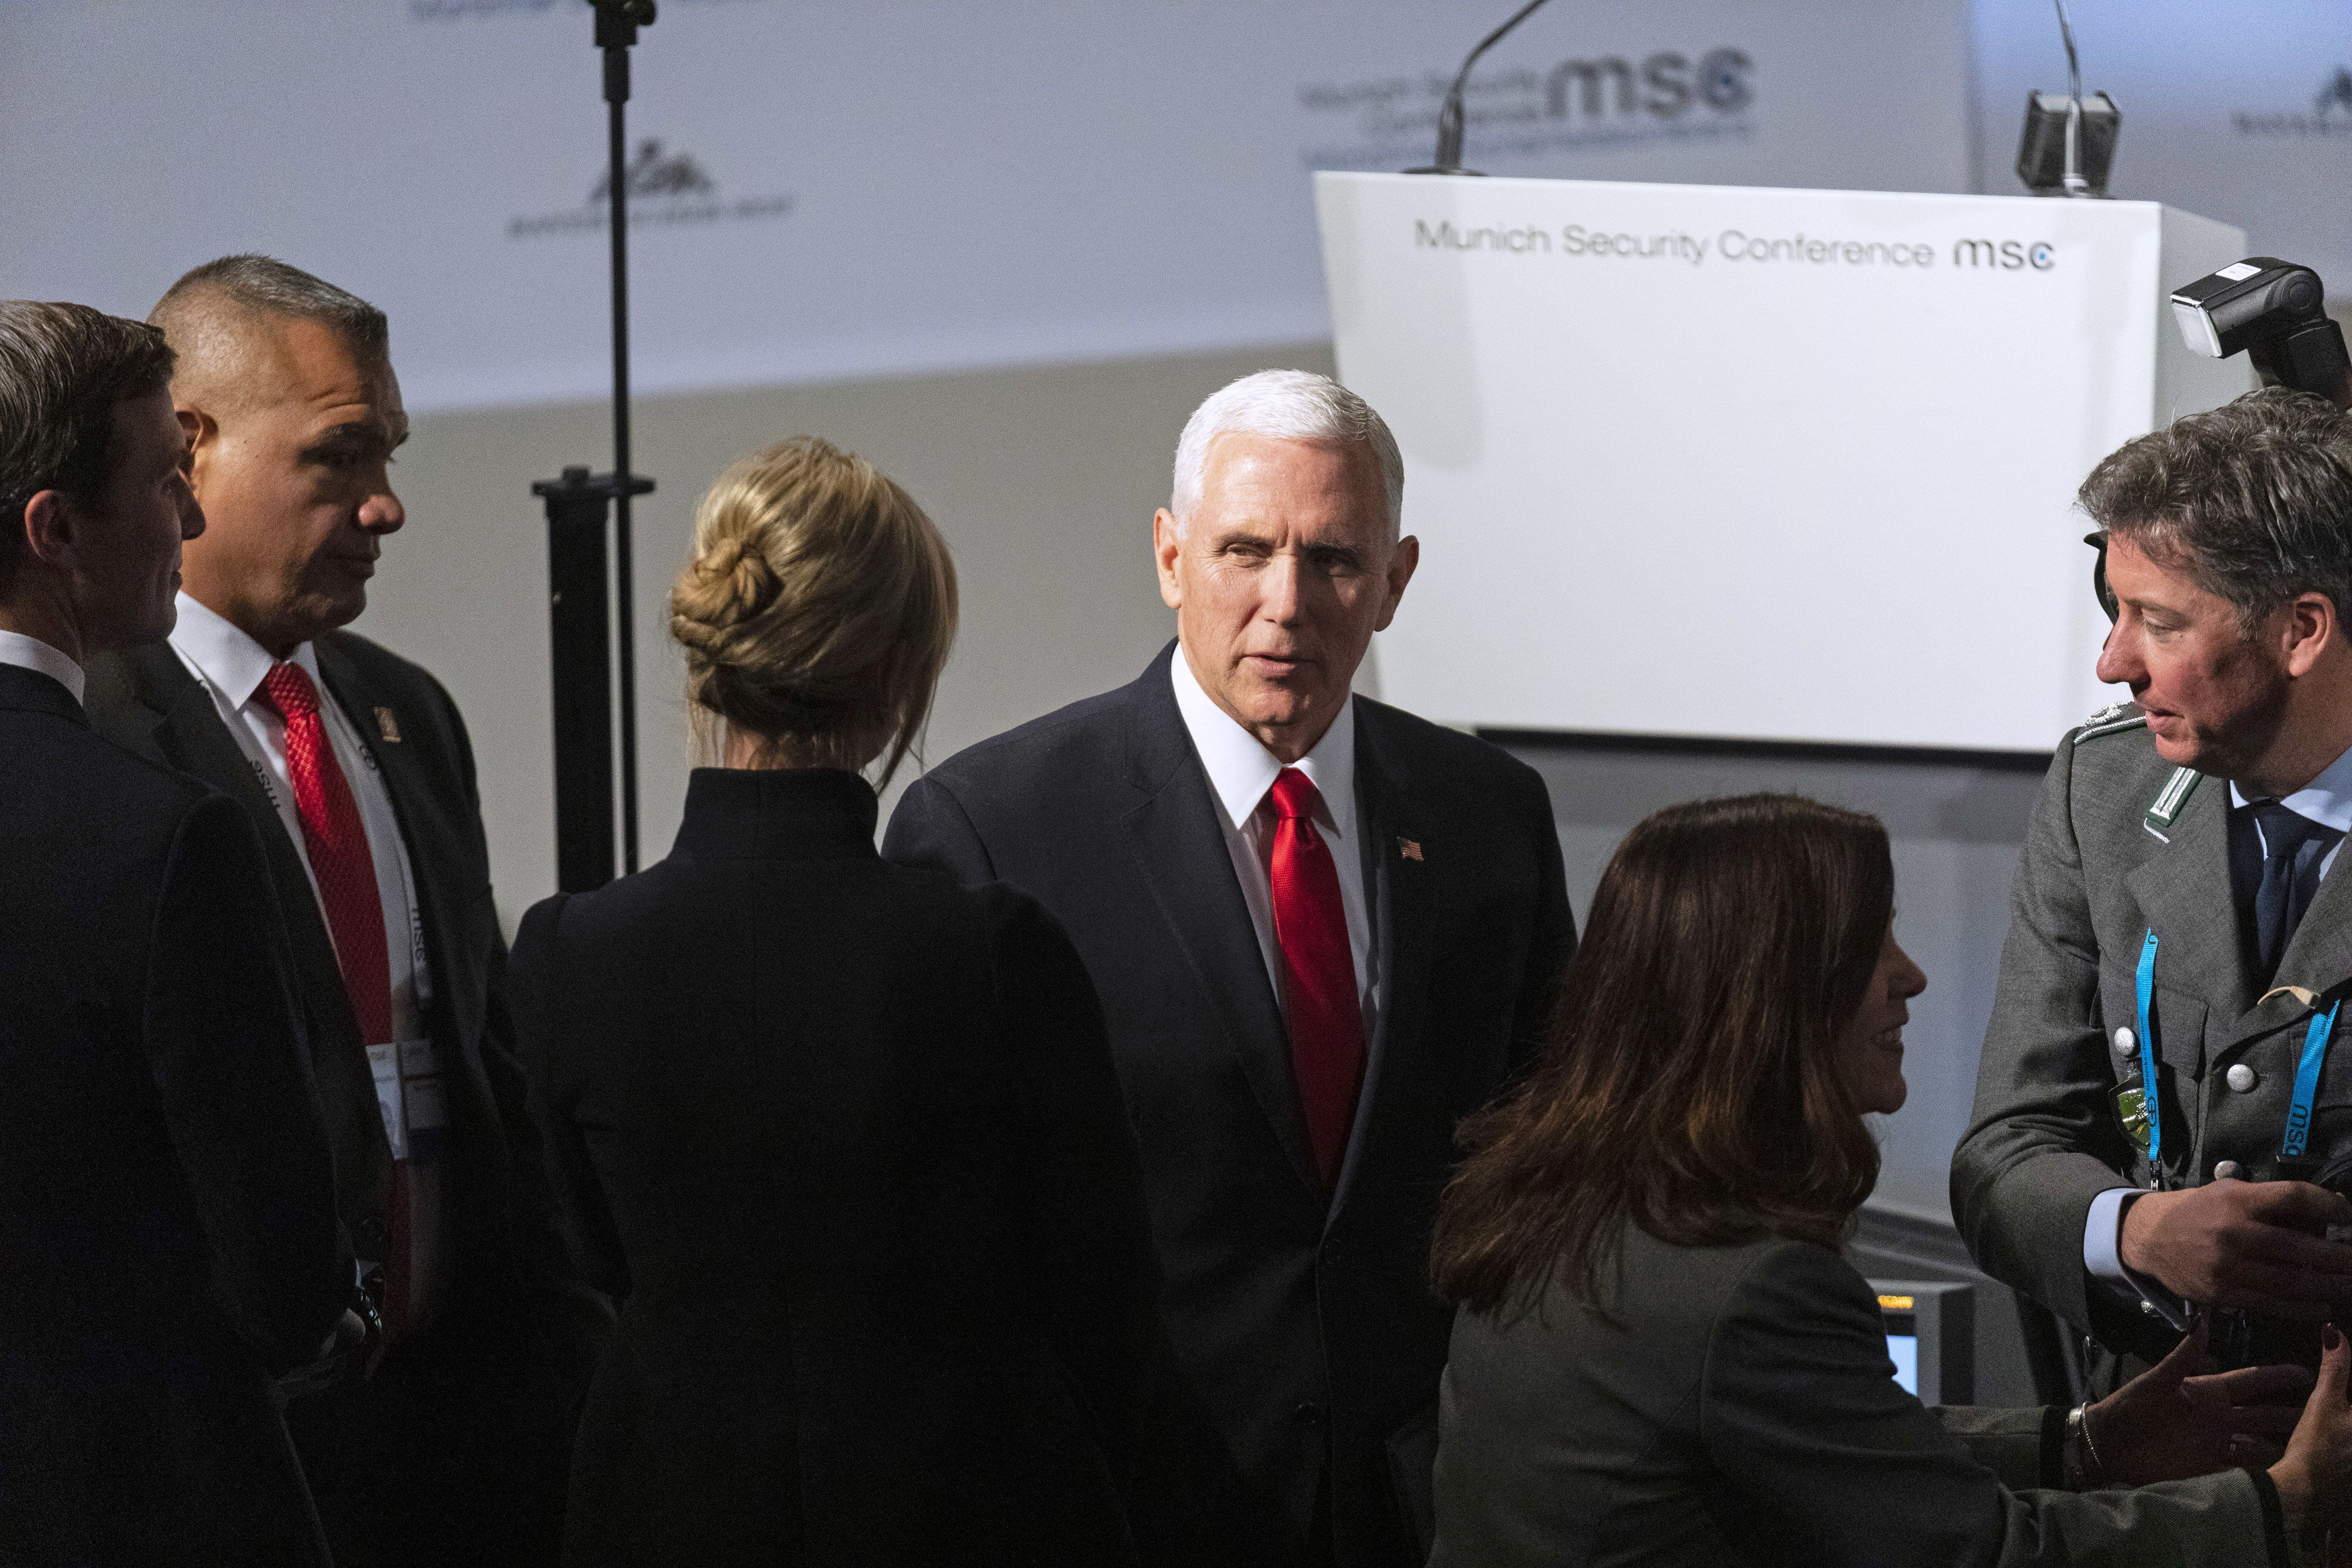 U.S. Vice President Mike Pence speaks to Ivanka Trump, assistant to U.S. President Donald Trump, during the Munich Security Conference in Munich, Germany, on Saturday, Feb. 16, 2019. Germany's chancellor Angela Merkel took President Donald Trump to task before an audience of senior security officials, calling his administrations suggestion that European autos are a threat to U.S. national security a shock. Photographer: Alex Kraus/Bloomberg via Getty Images